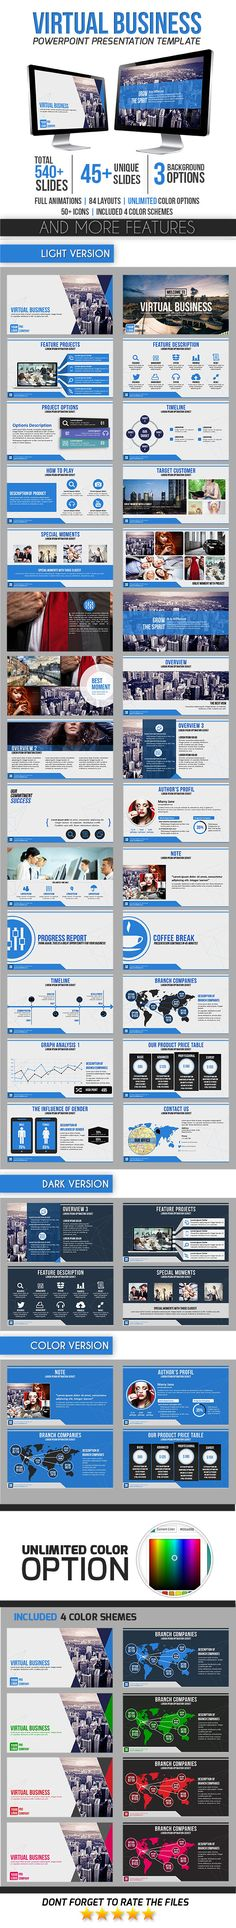 Virtual Business - PowerPoint Presentation Template Download…